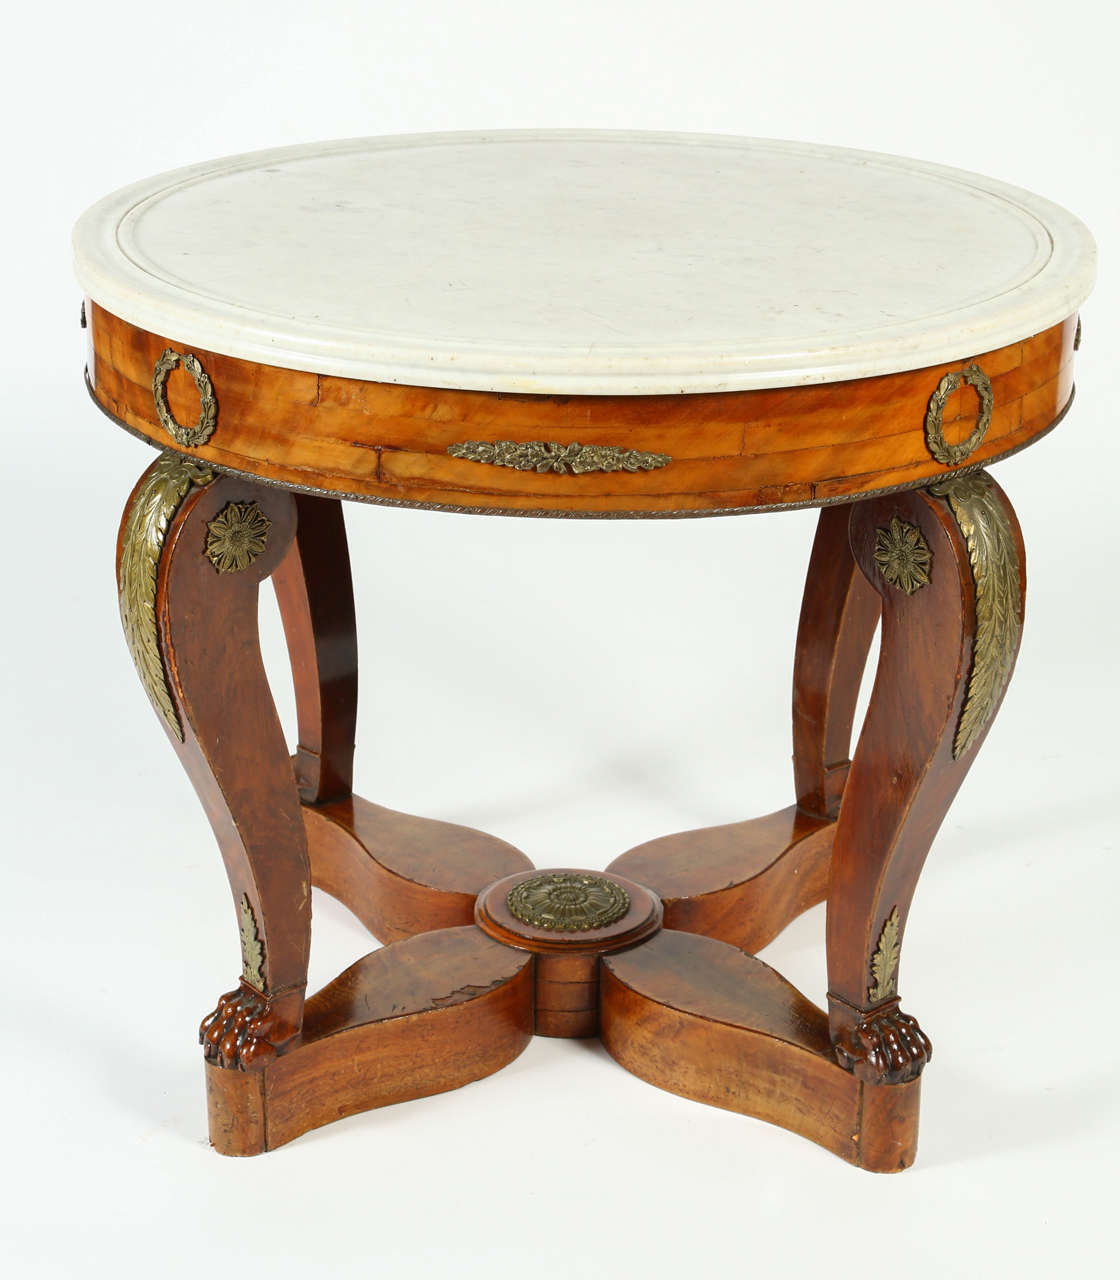 This Gueridon table from the French Restoration Era has a beautiful flame mahogany veneer and a white marble top. Delicate gilt-bronze garniture depicting laurel wreaths, palmettes, and roses decorate the apron, legs, and the star-shaped base. The